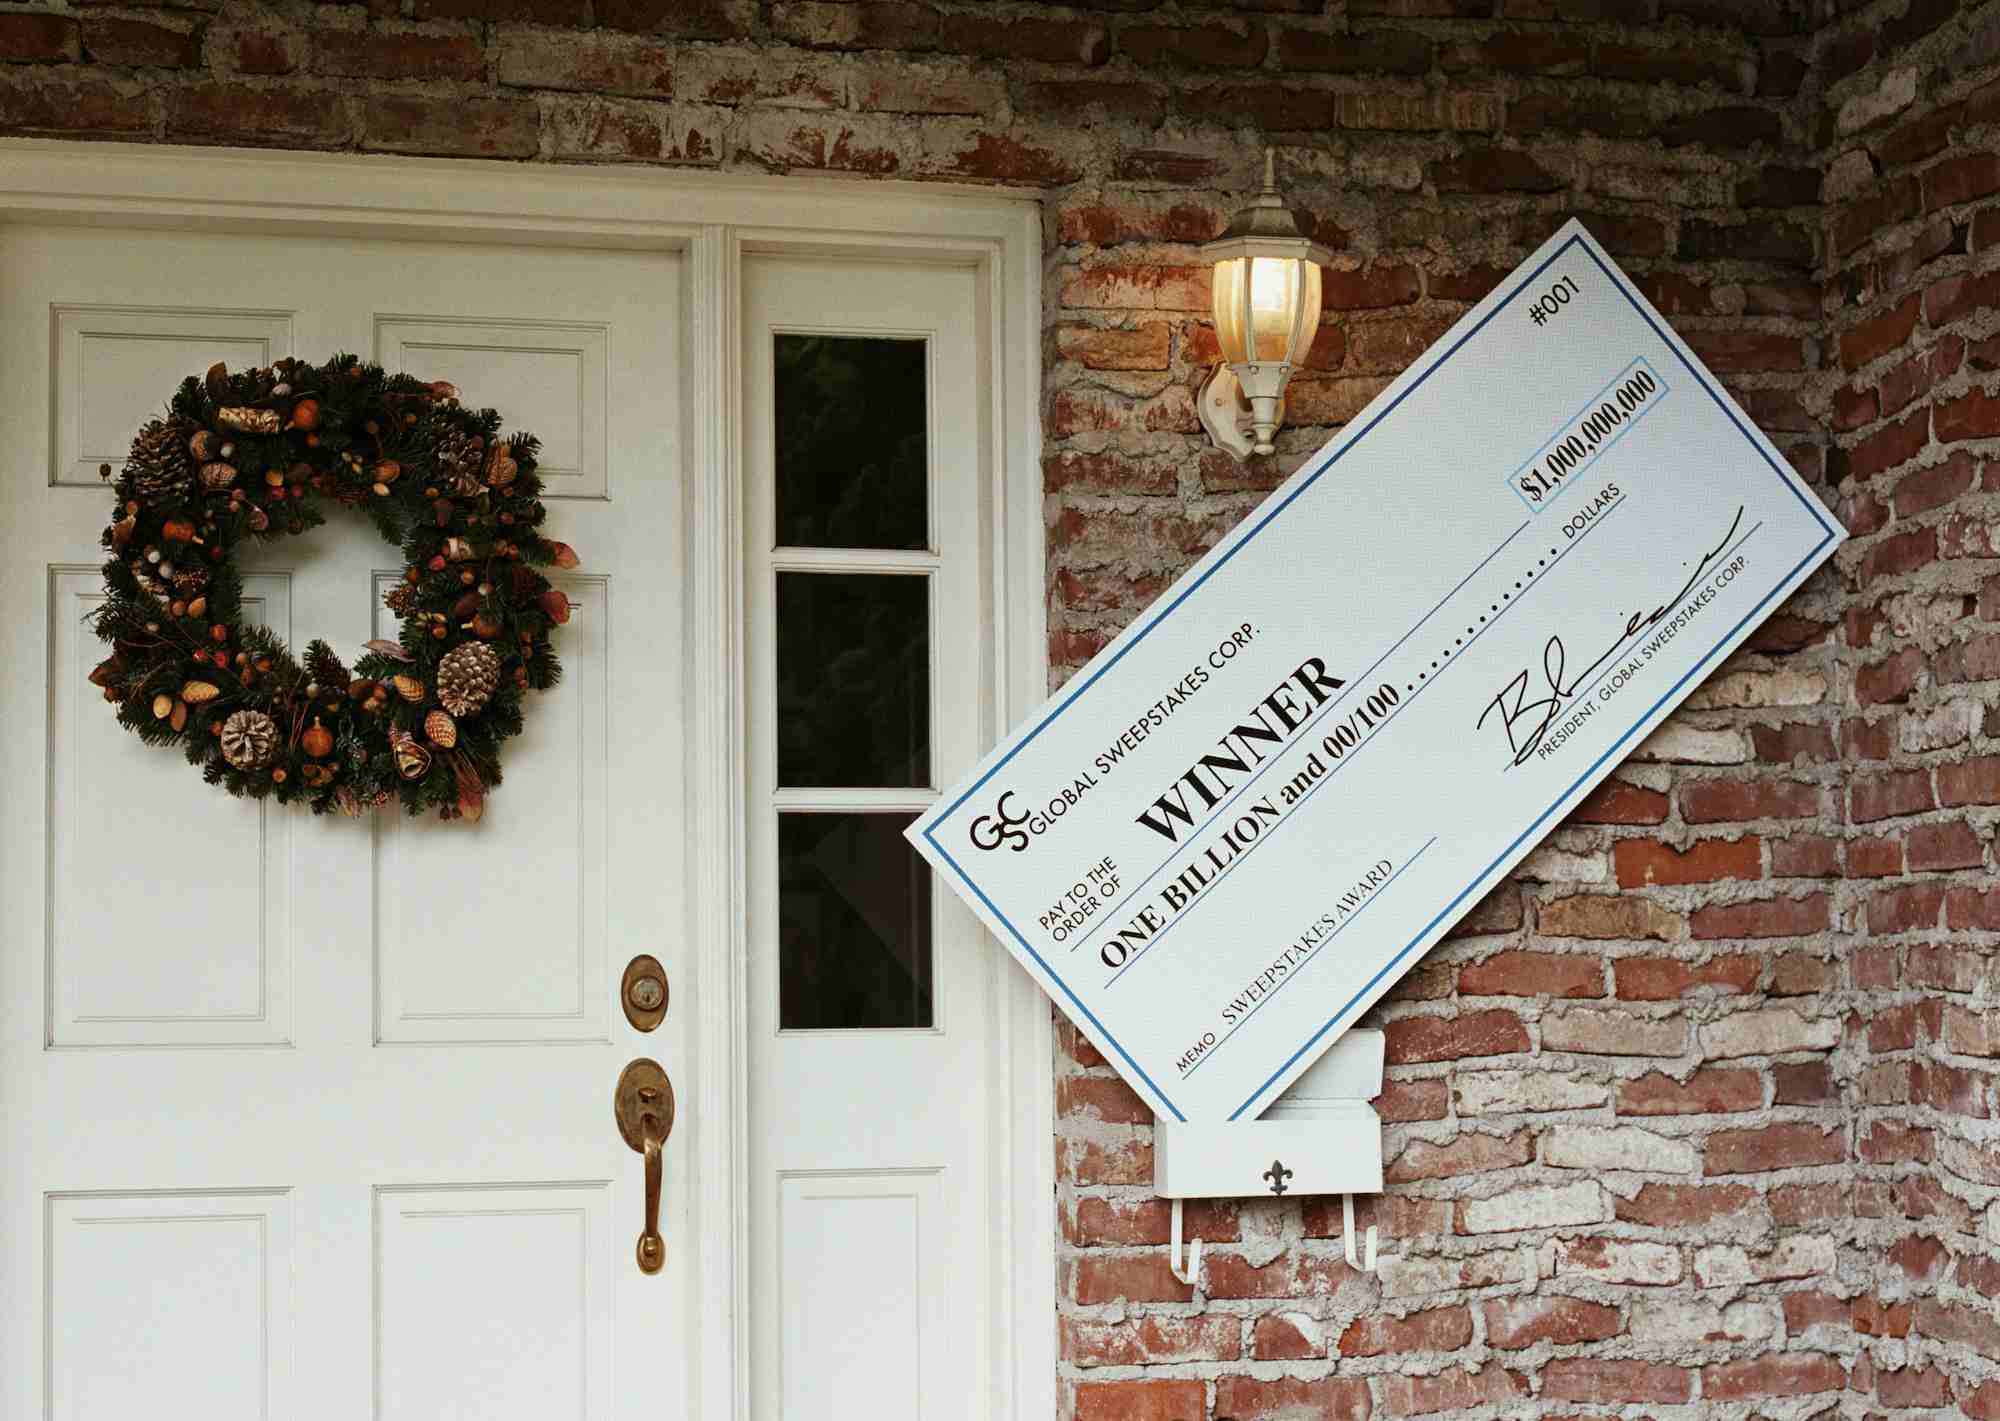 Oversized one billion dollar check, sitting in mailbox of house